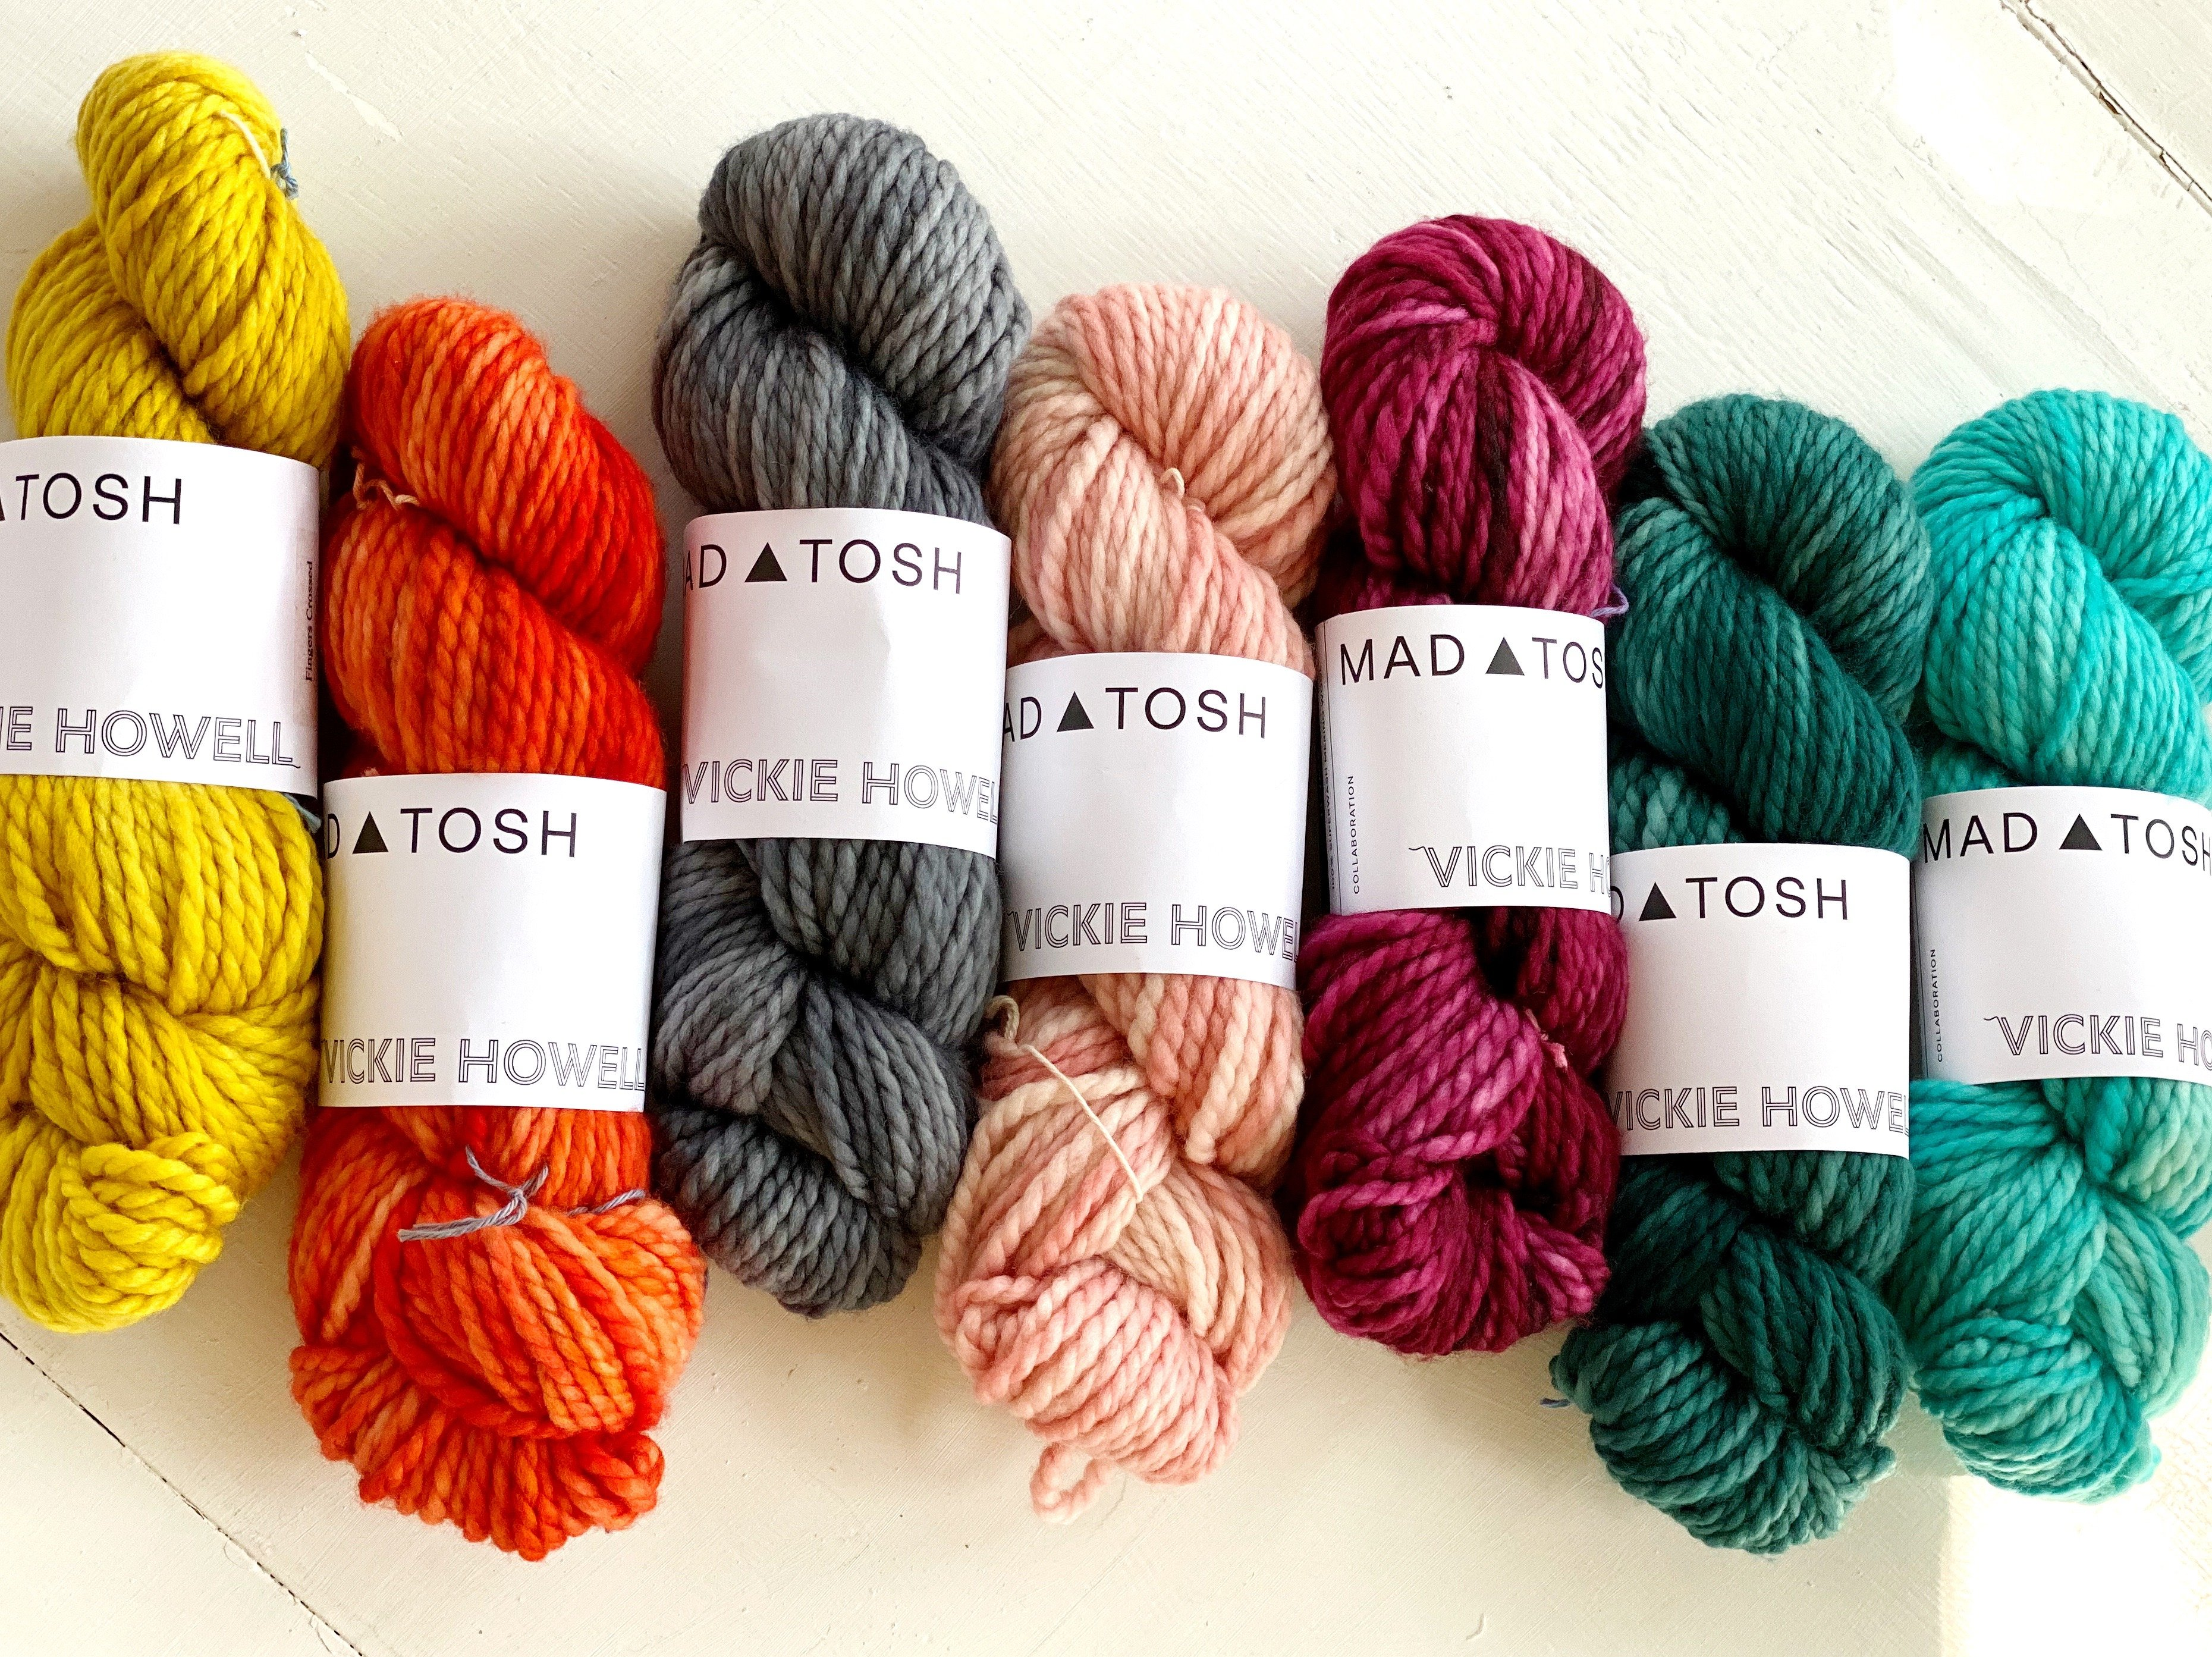 Grand Prize = One of each color of Vickie Howell for MAD   TOSH HOME Collection Yarn